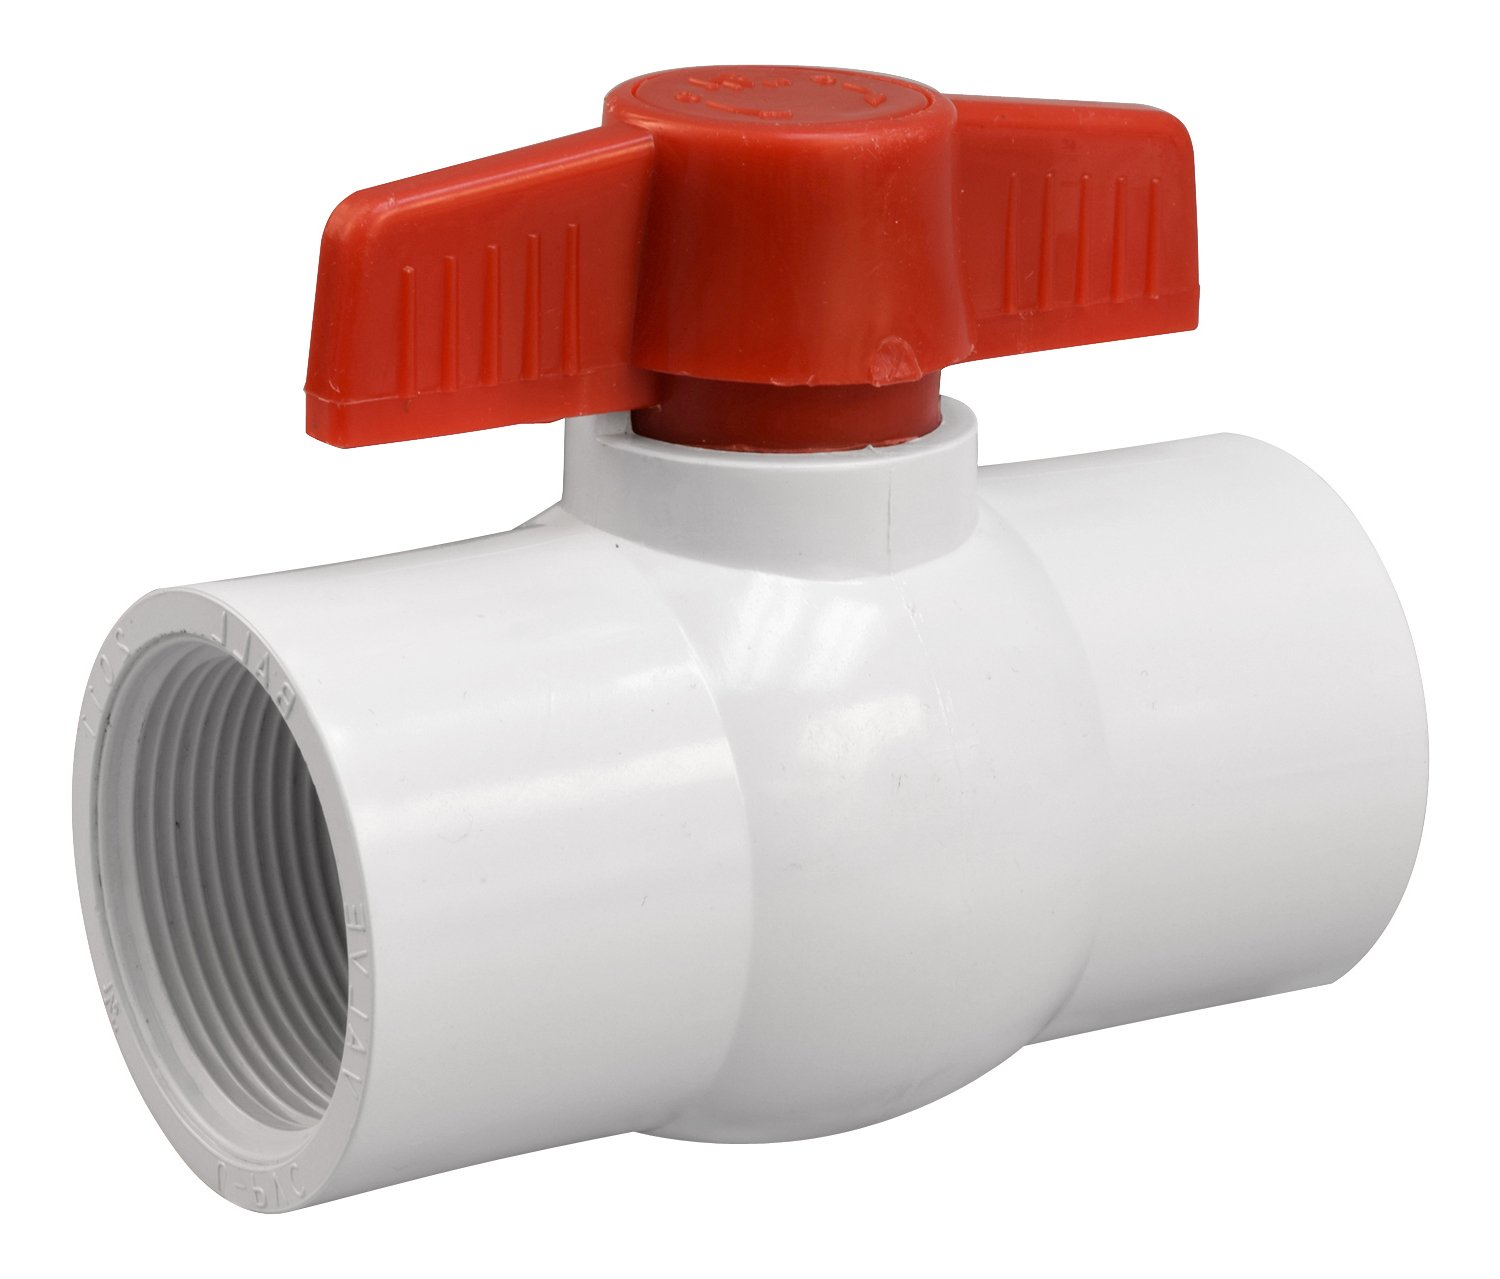 Midwest Control SSMF-50NL 1000 PSI CWP 1//2 FPT 316SS Lead-Free Certified Ball Valve